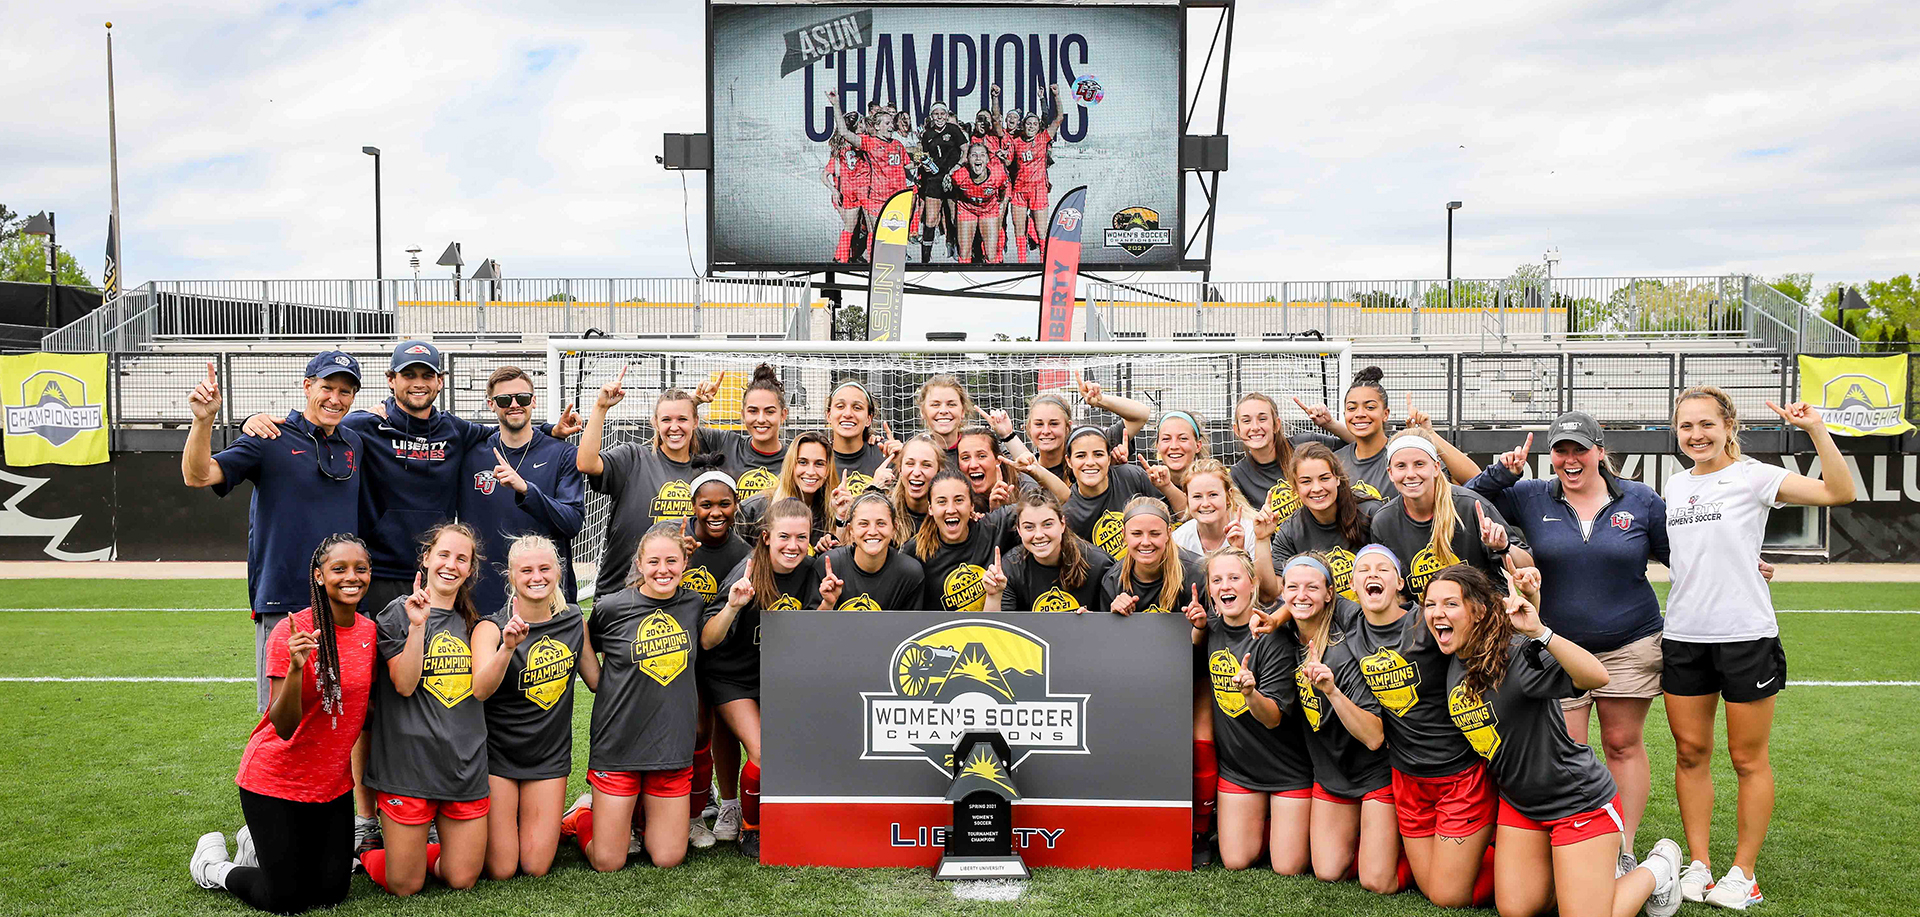 Women's soccer wins ASUN crown, punches ticket to NCAA College Cup